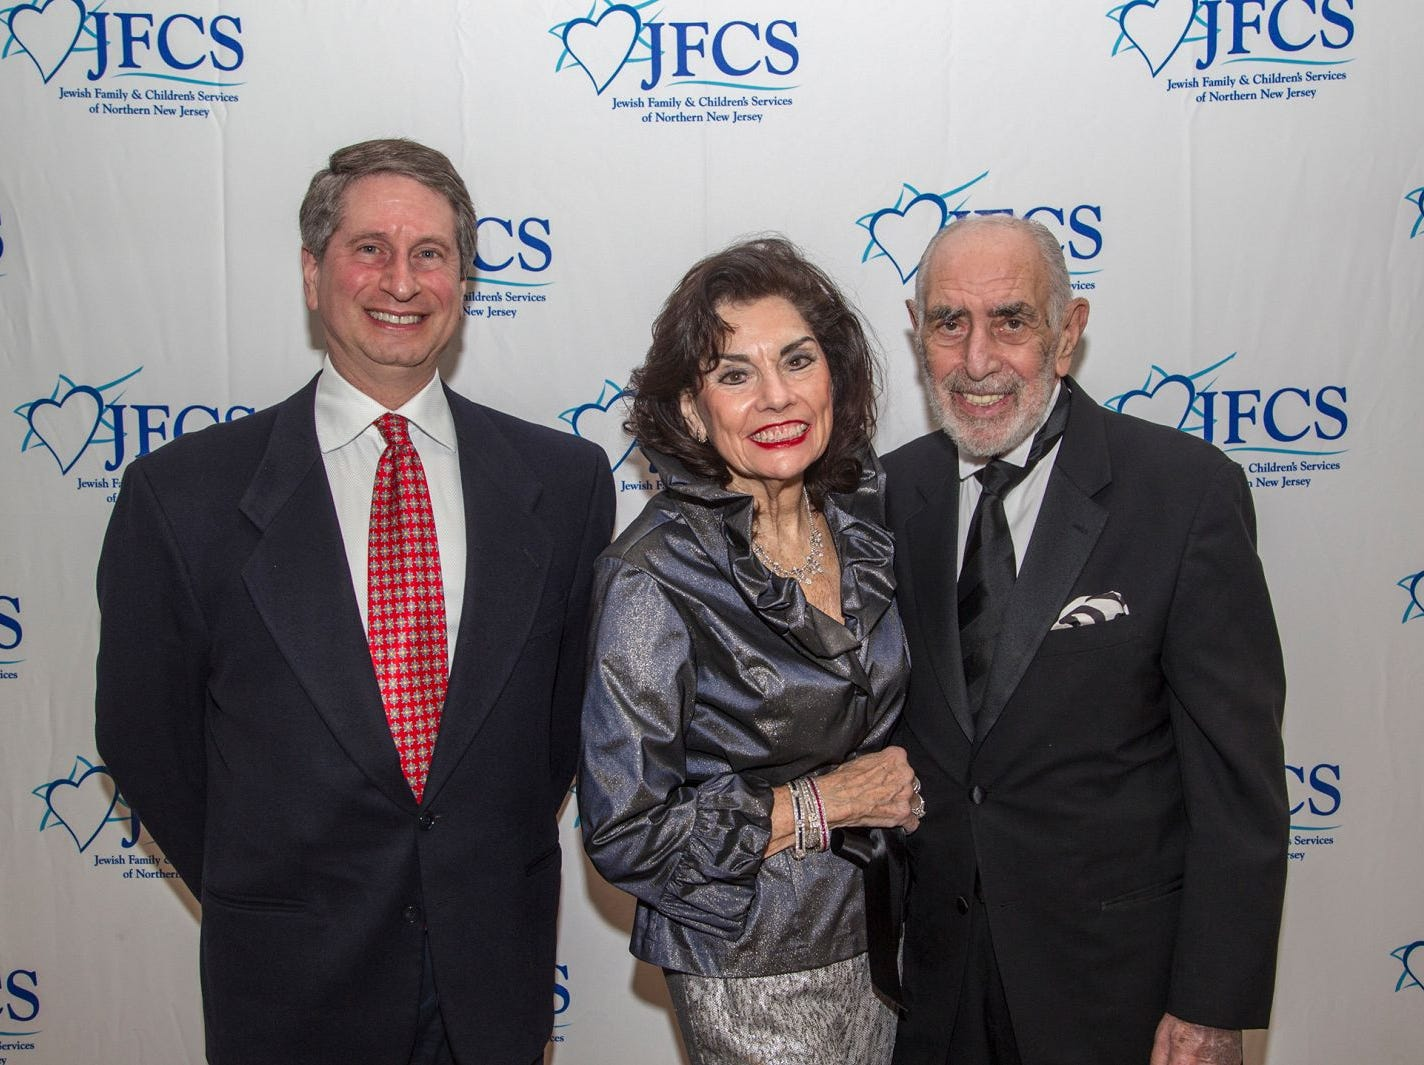 James Ackerman, Bernie and Norma Koster. Jewish Family & Children's Services of Northern New Jersey held its annual gala at the Edgewood Country Club in River Vale. The evening honored Shira Feuerstein, Jayne Petak, and Alan Scharfstein for their leadership, support, and dedication. 11/18/2018